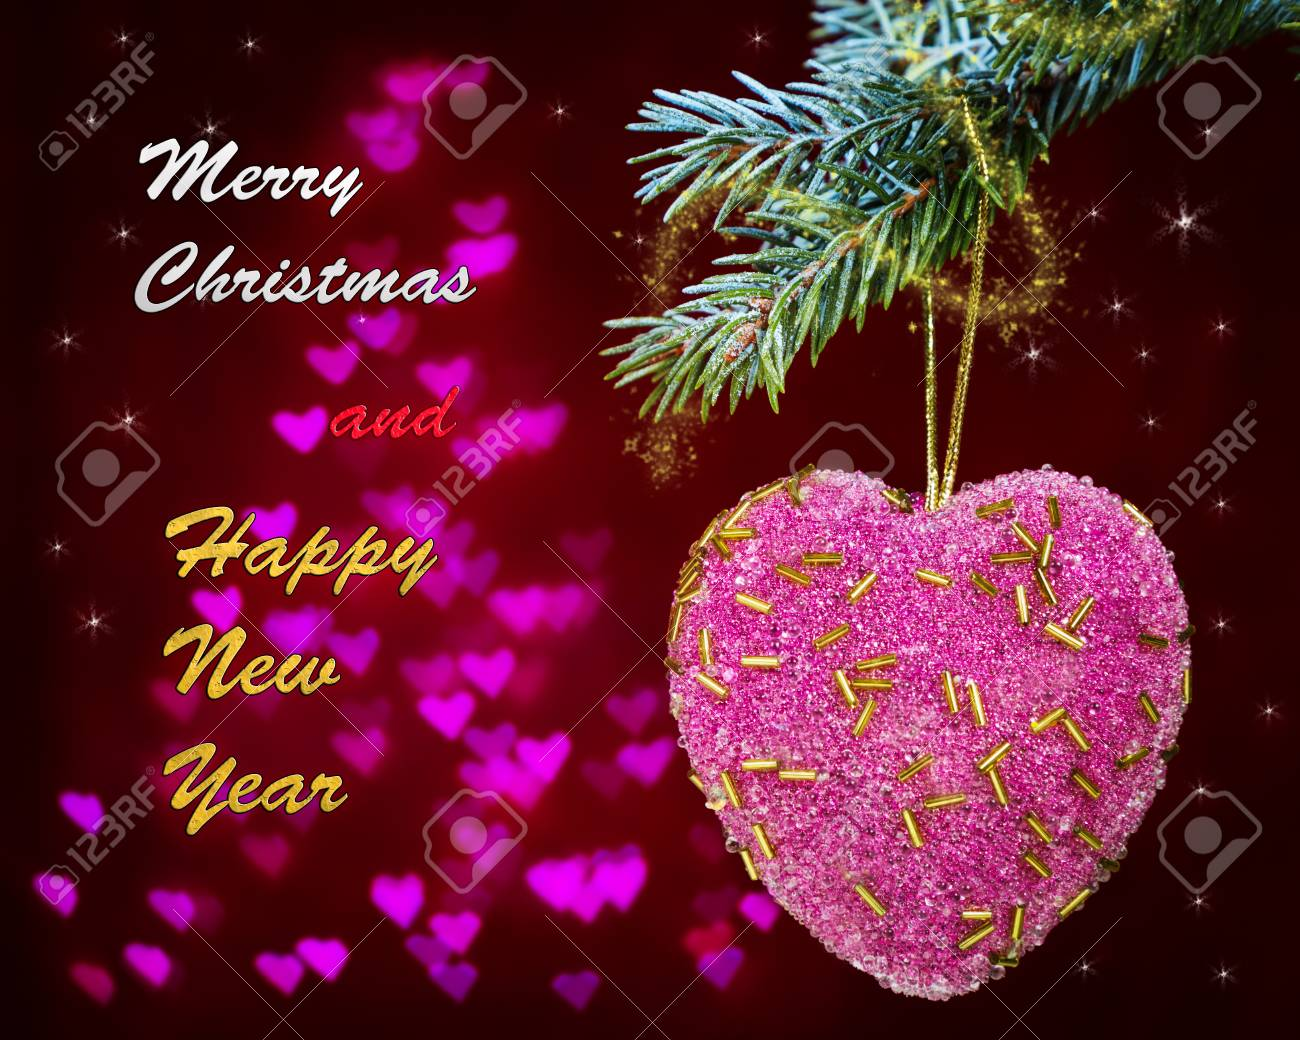 Greeting Card With Pink Heart And The Words Merry Christmas And